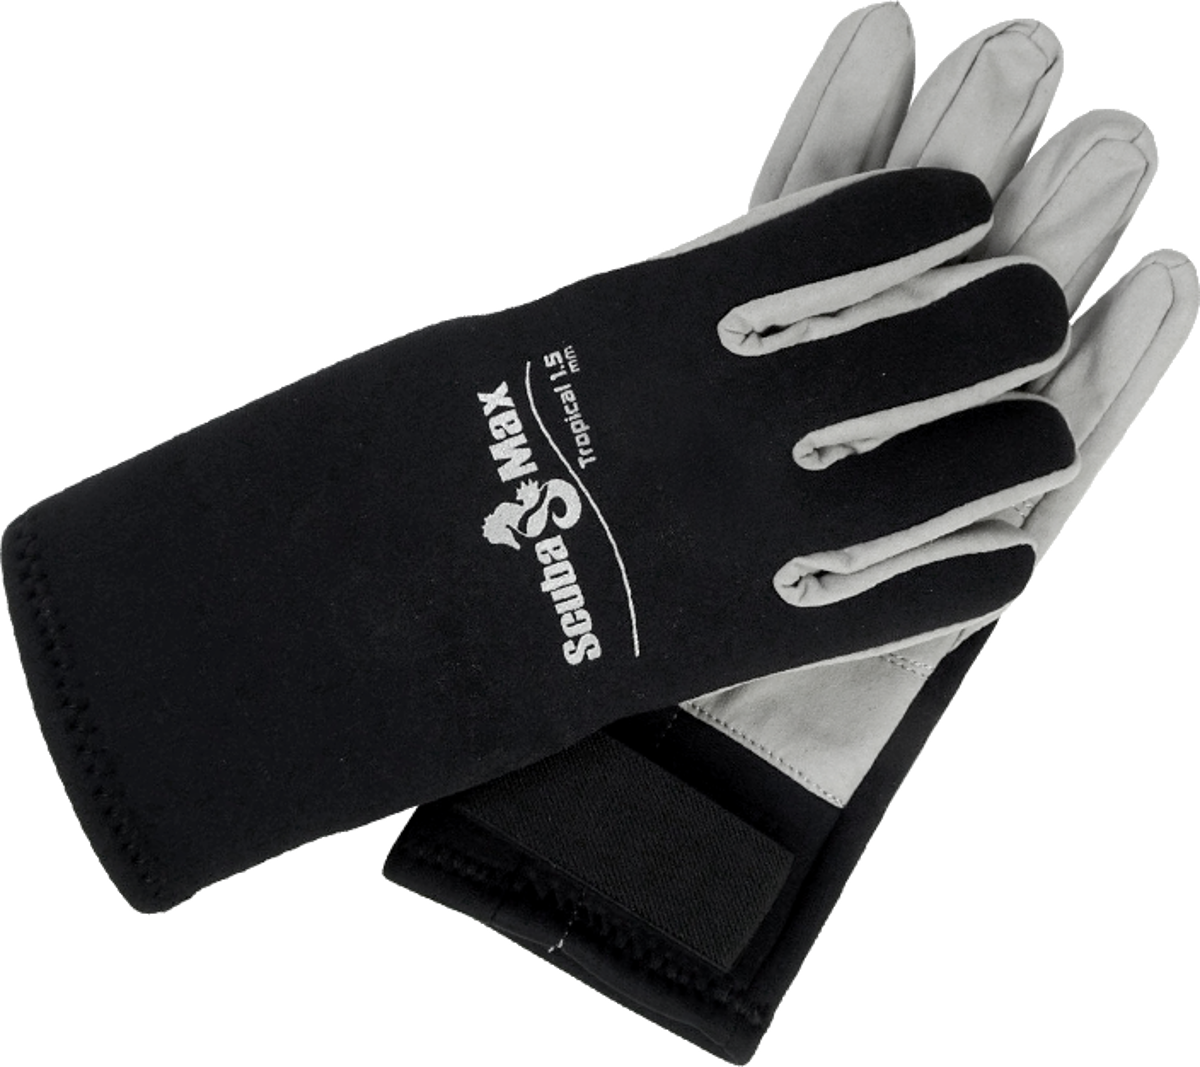 ScubaMax GV-707 1.5mm Armara Leather Palm Glove